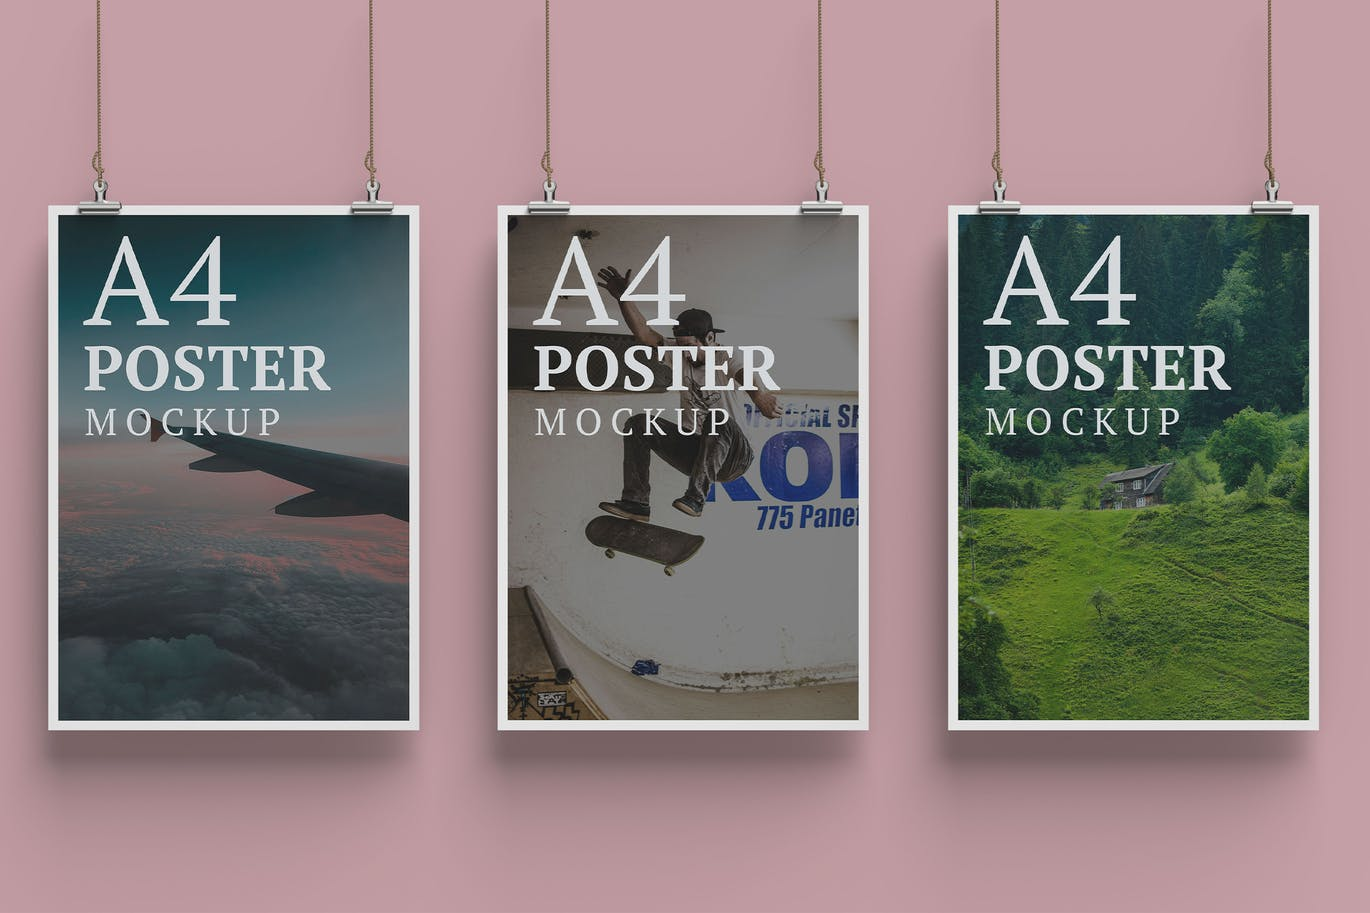 Three A4 Poster Mockup Front Angle View